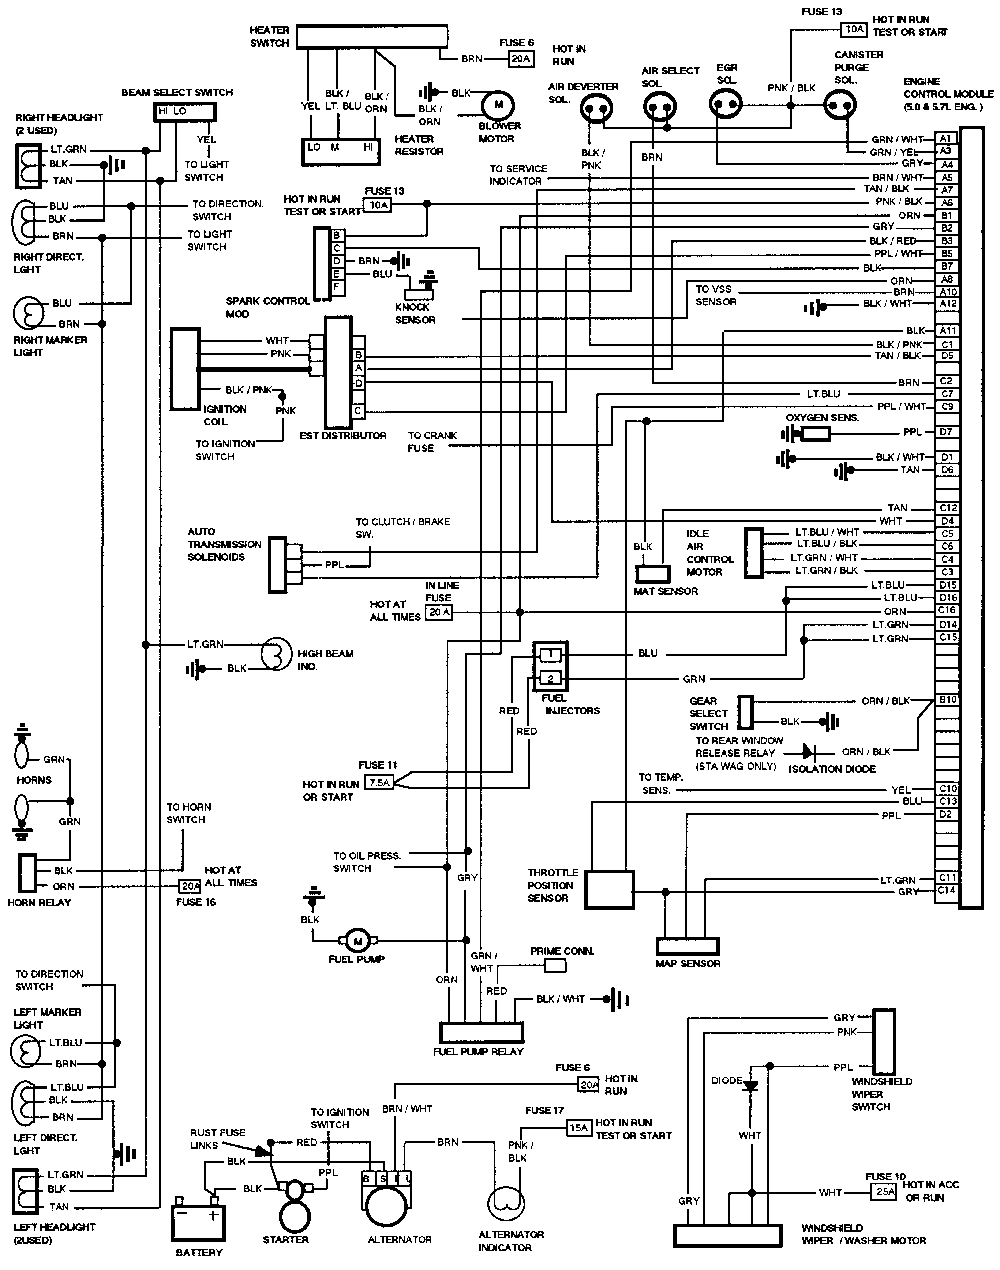 lokar neutral safety switch wiring diagram Download-Lokar Neutral Safety Switch Wiring Download safety switch wiring diagram Fresh 1996 4l60e Wiring Diagram 8-j